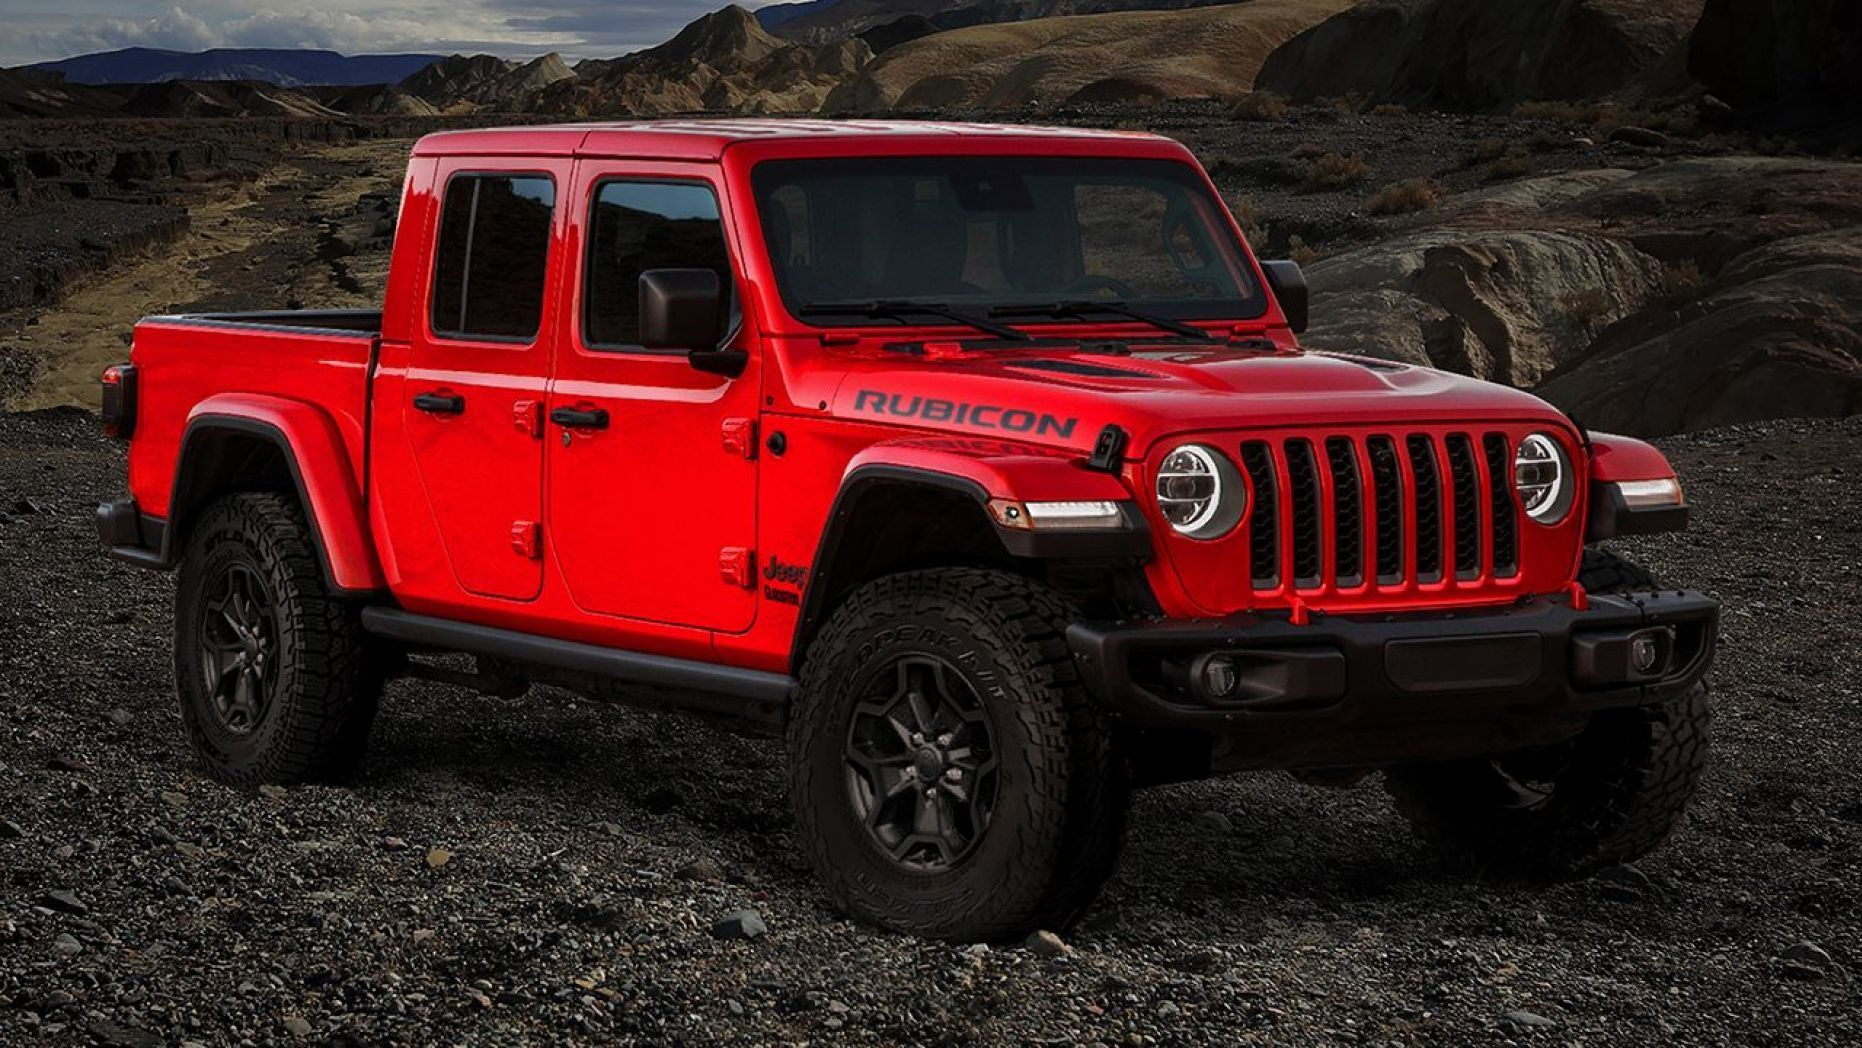 2020 Jeep Gladiator Launch Edition On Sale For Just 1 Day Jeep Gladiator Jeep Pickup Gladiator